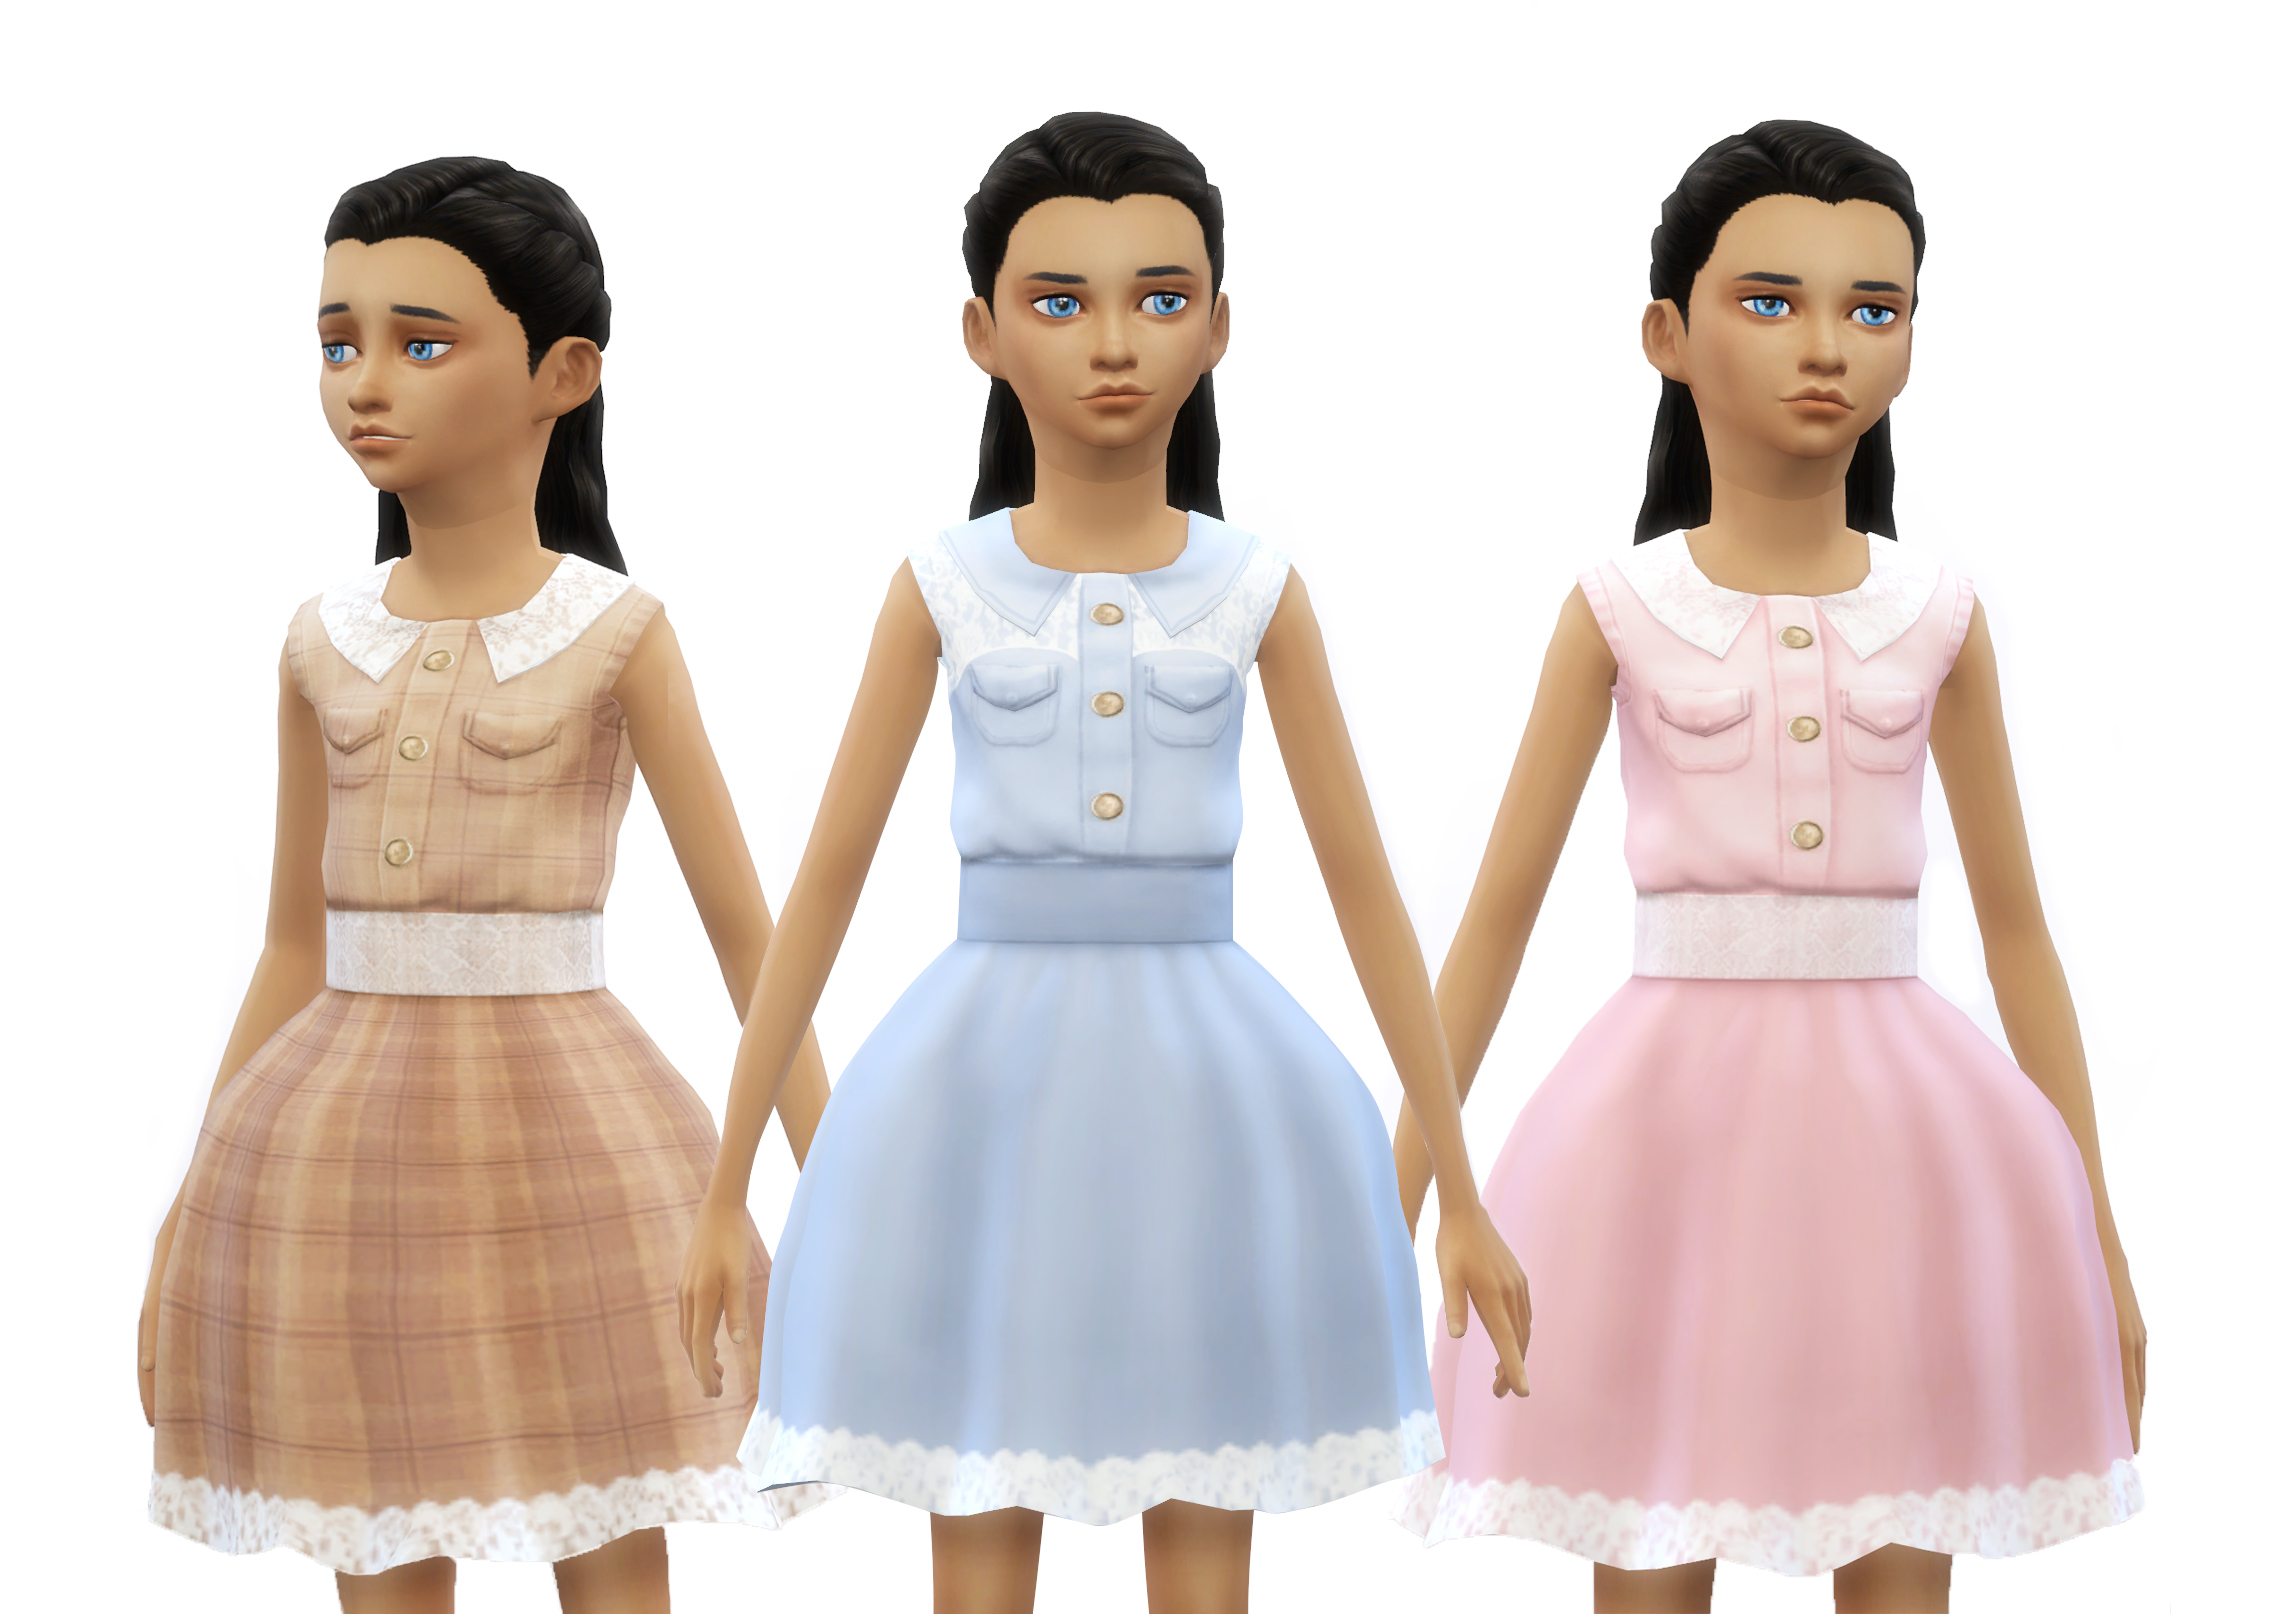 Pastel Dresses With Lace Details by dani-paradise